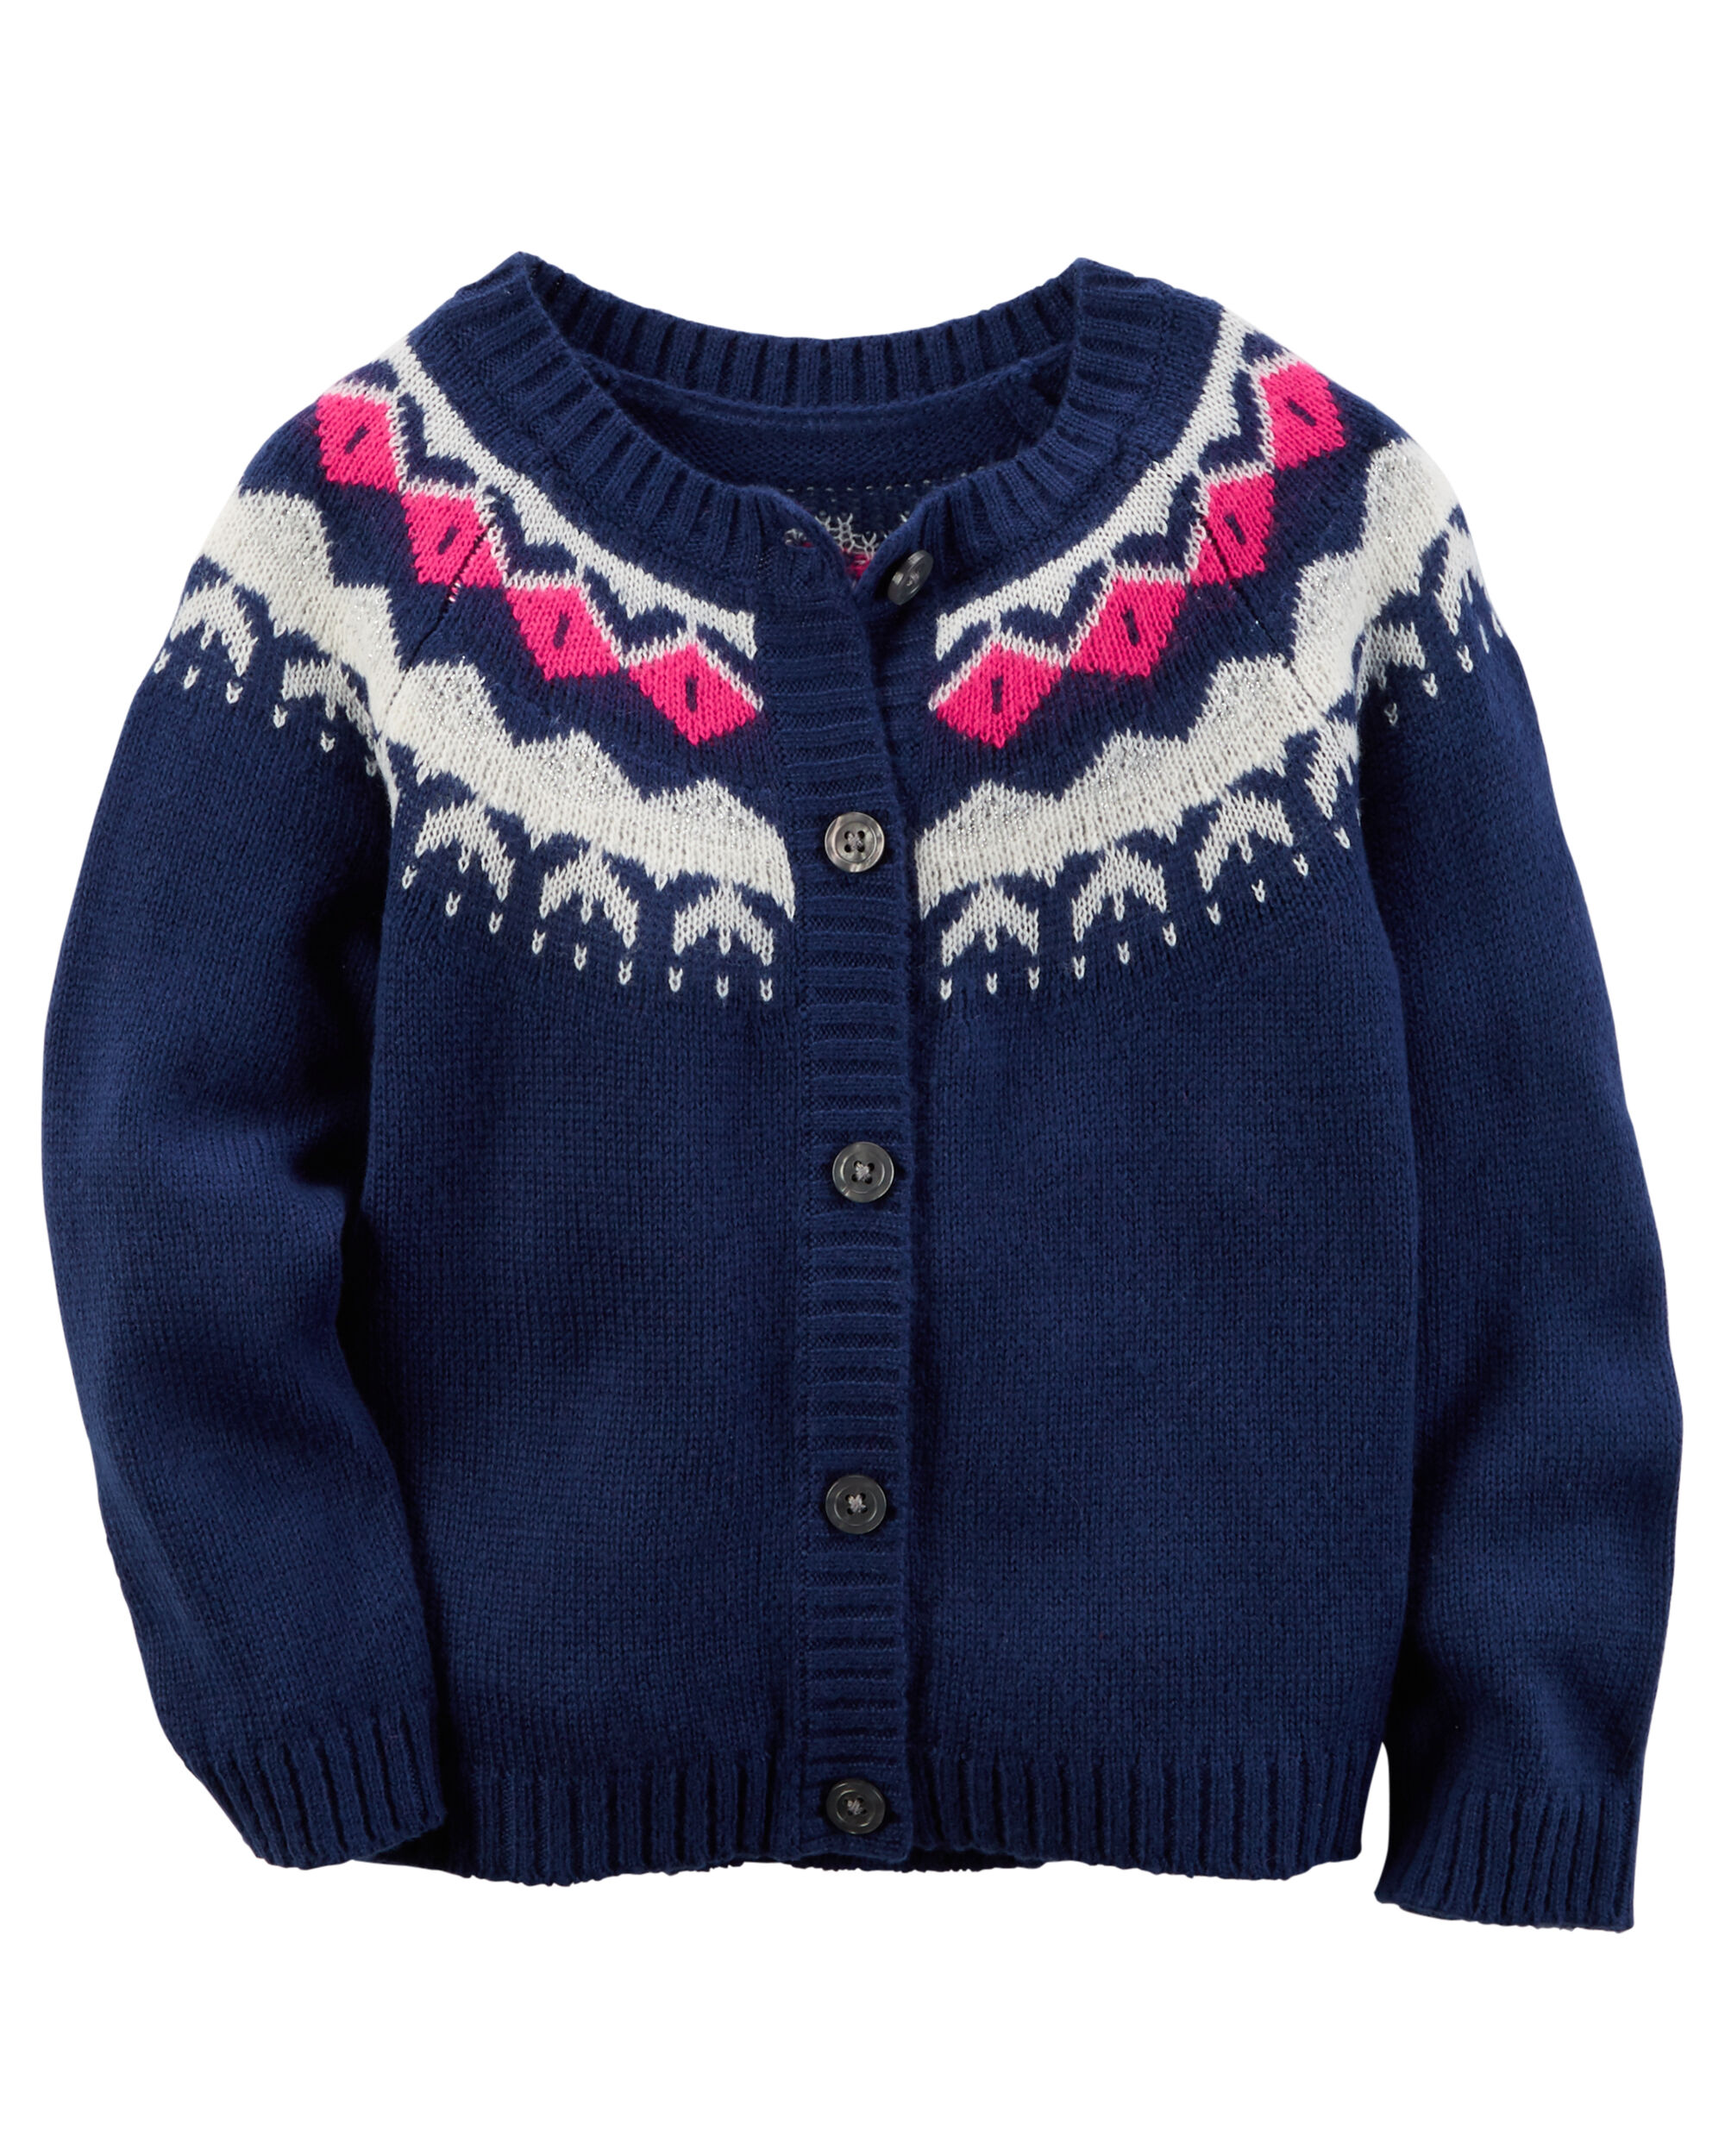 Fair Isle Cardigan | Carters.com